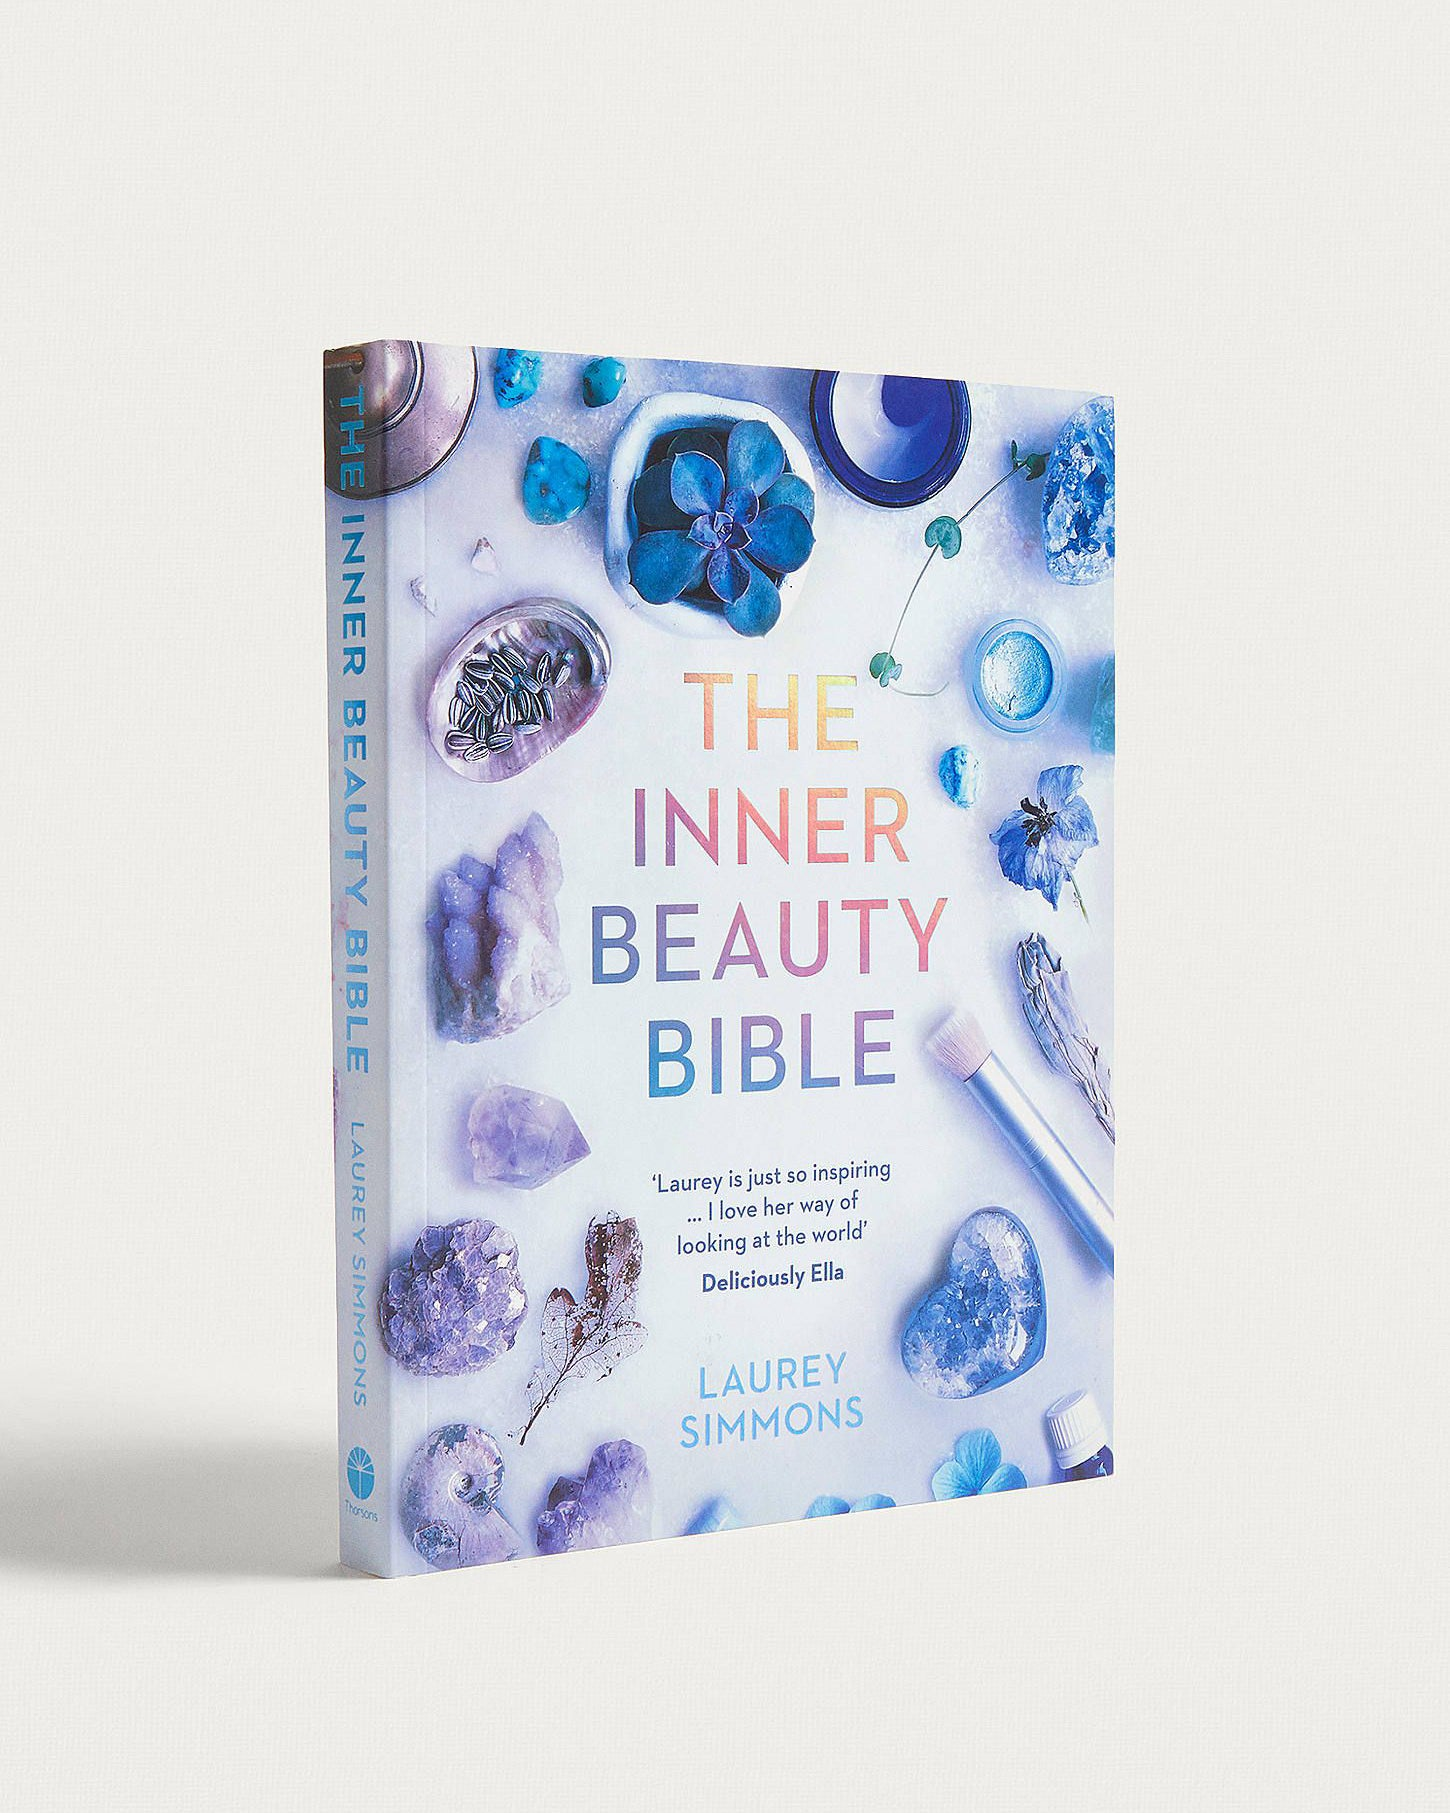 The Inner Beauty Bible / Laurey Simmons